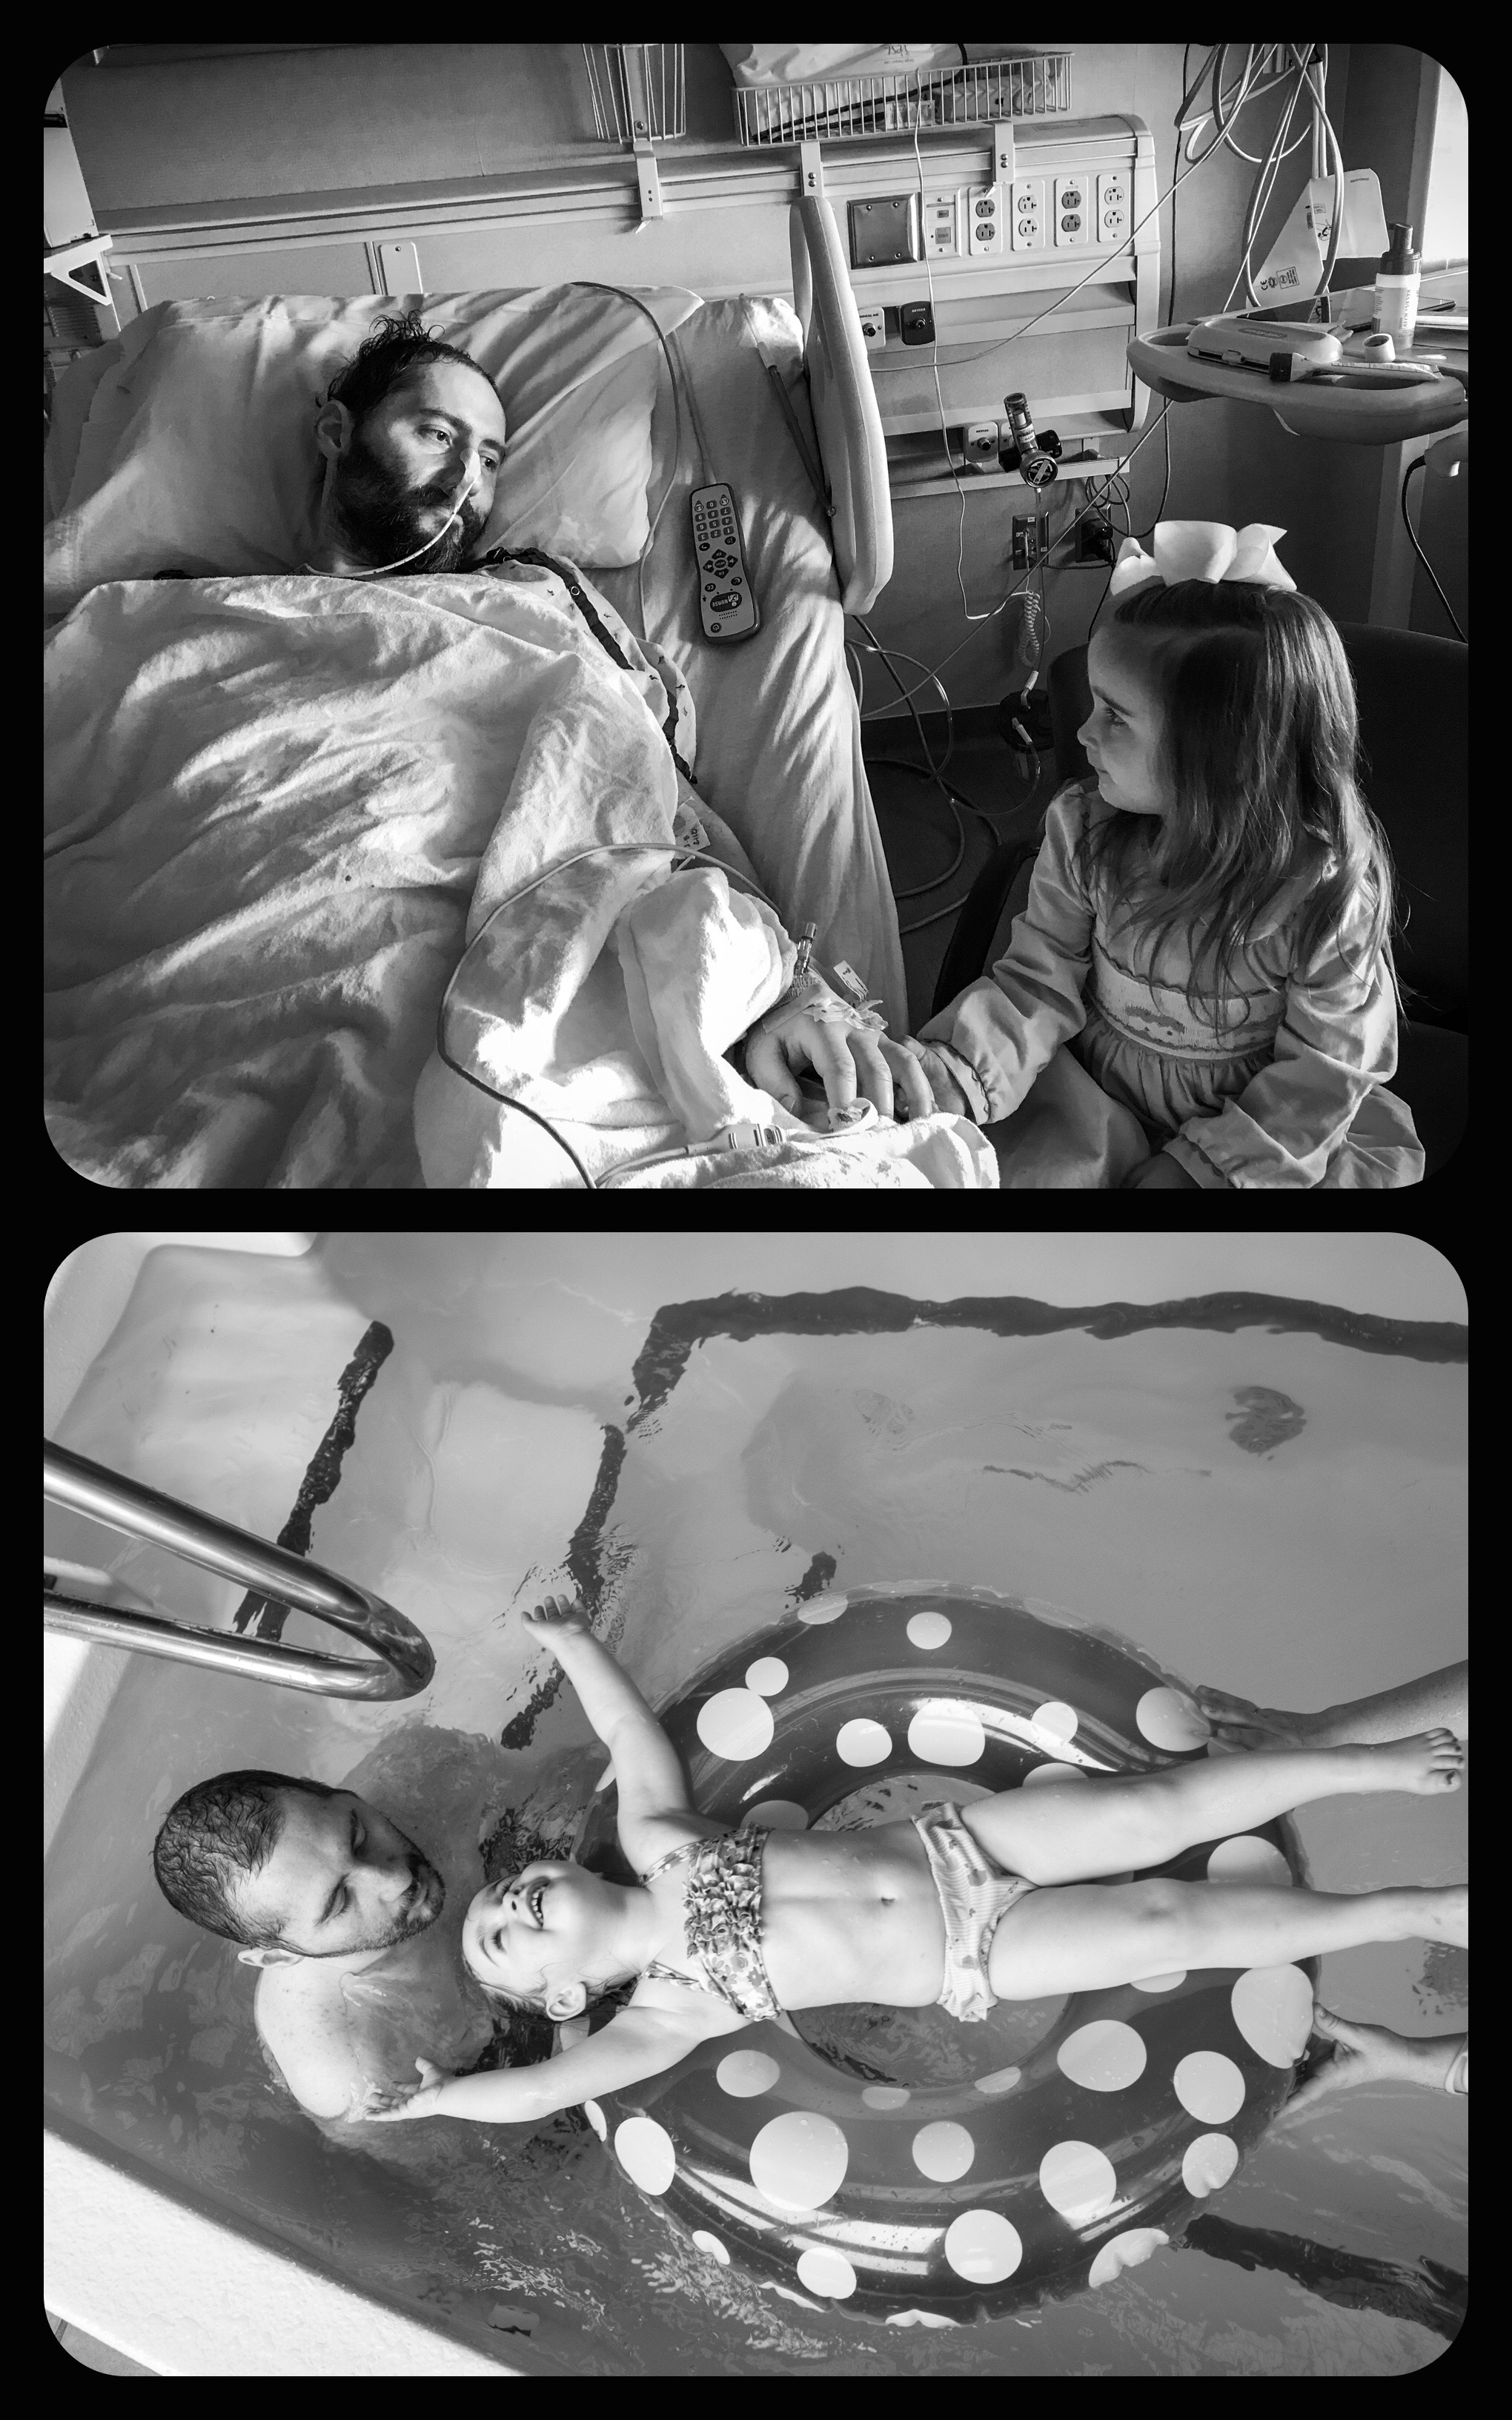 This diptych incorporates edited iPhone photos Mike's wife Denise's shot in the hospital paired with images I took during Mike's stay at QLI.